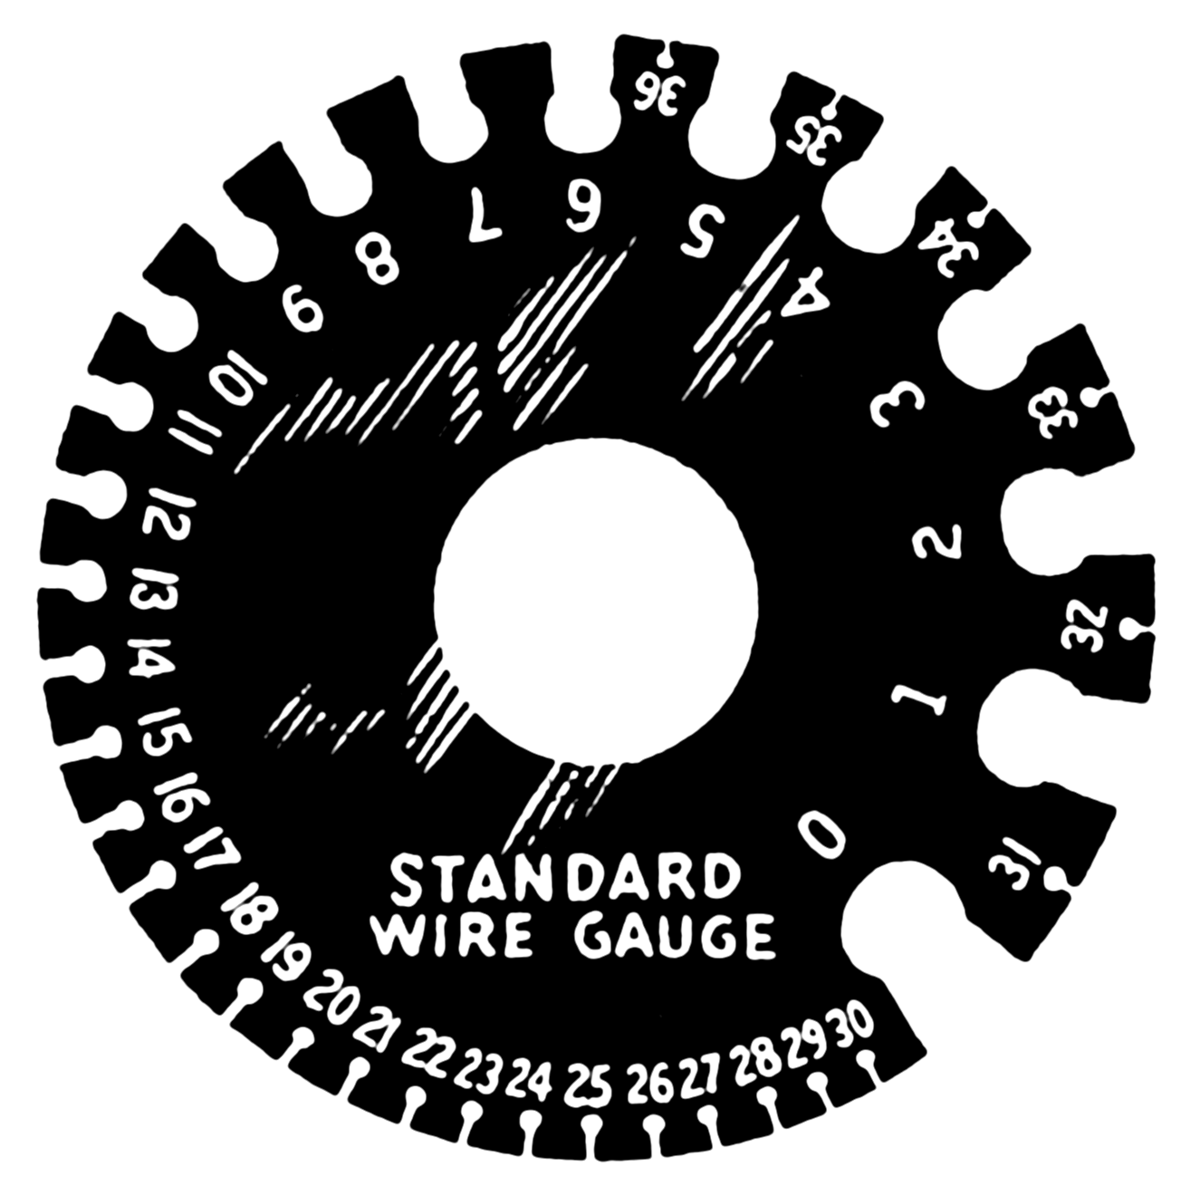 Standard wire gauge wikipedia greentooth